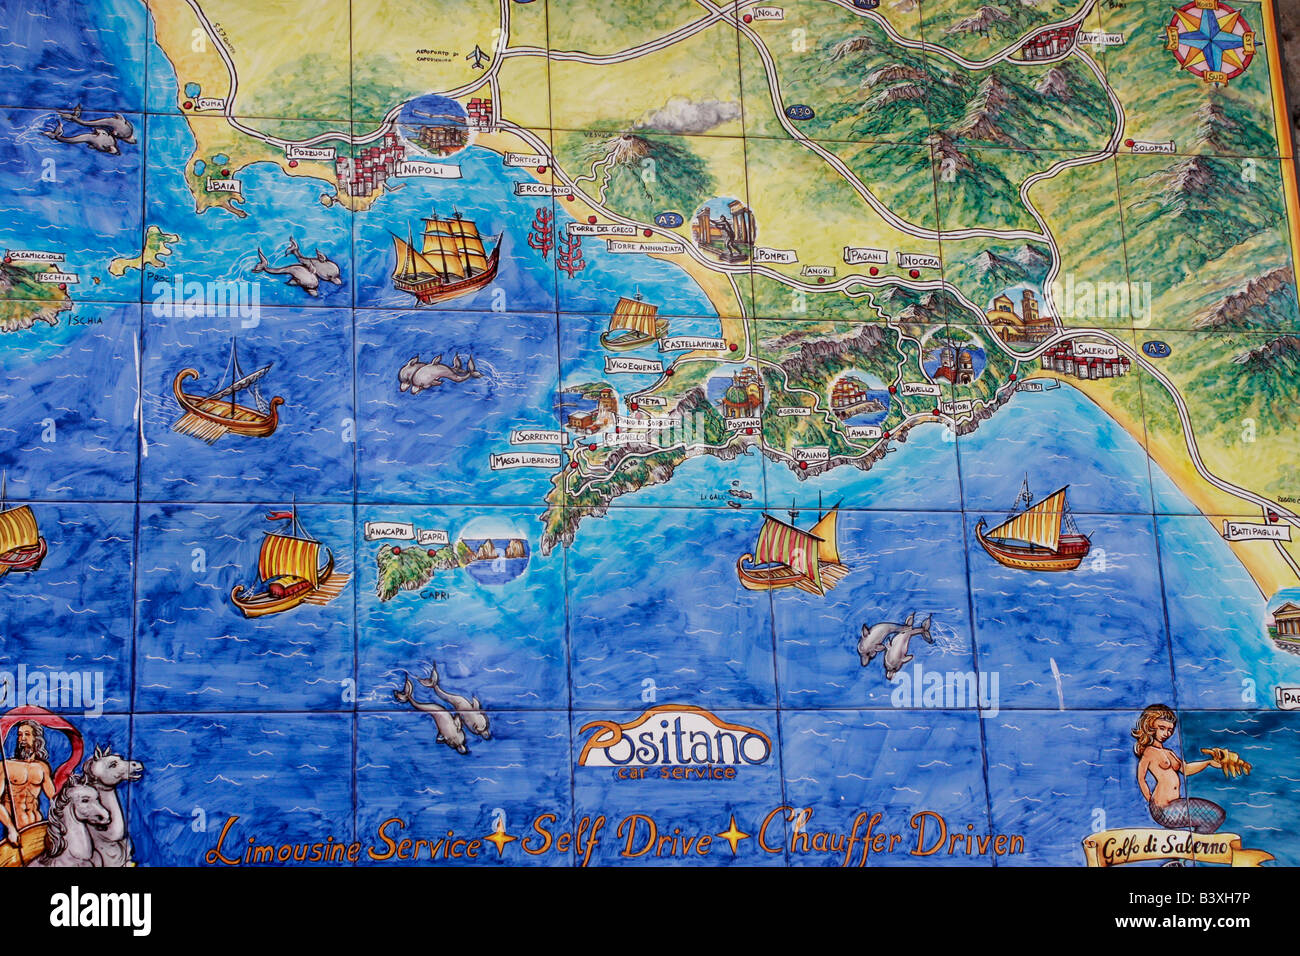 ceramic tile map of positanoamalfi coastitaly. ceramic tile map of positanoamalfi coastitaly stock photo